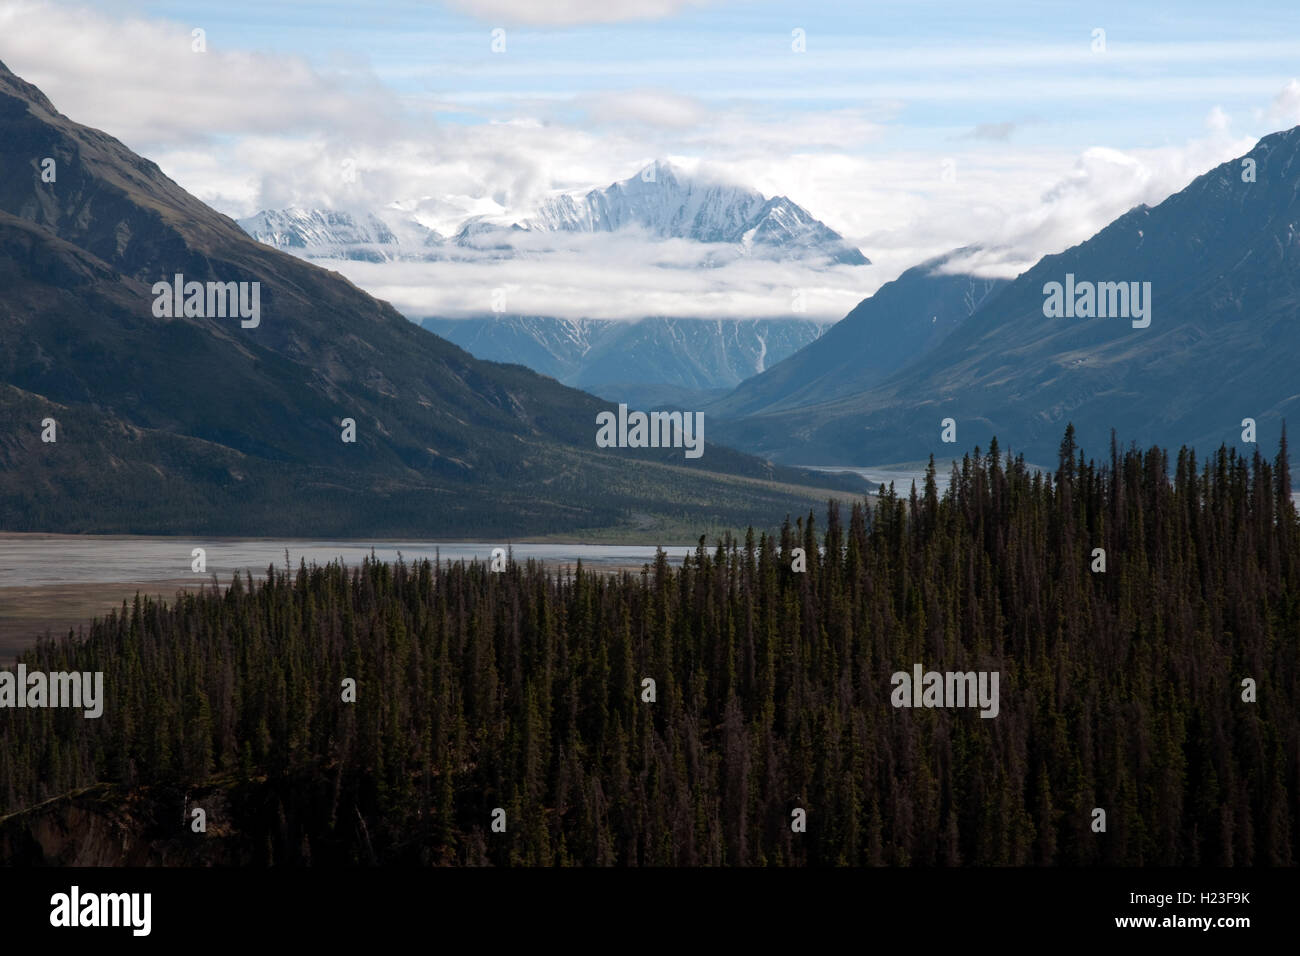 A peak at the high ranges and ice fields of the St. Elias Mountains at the head of the Slims River Valley, Yukon, - Stock Image